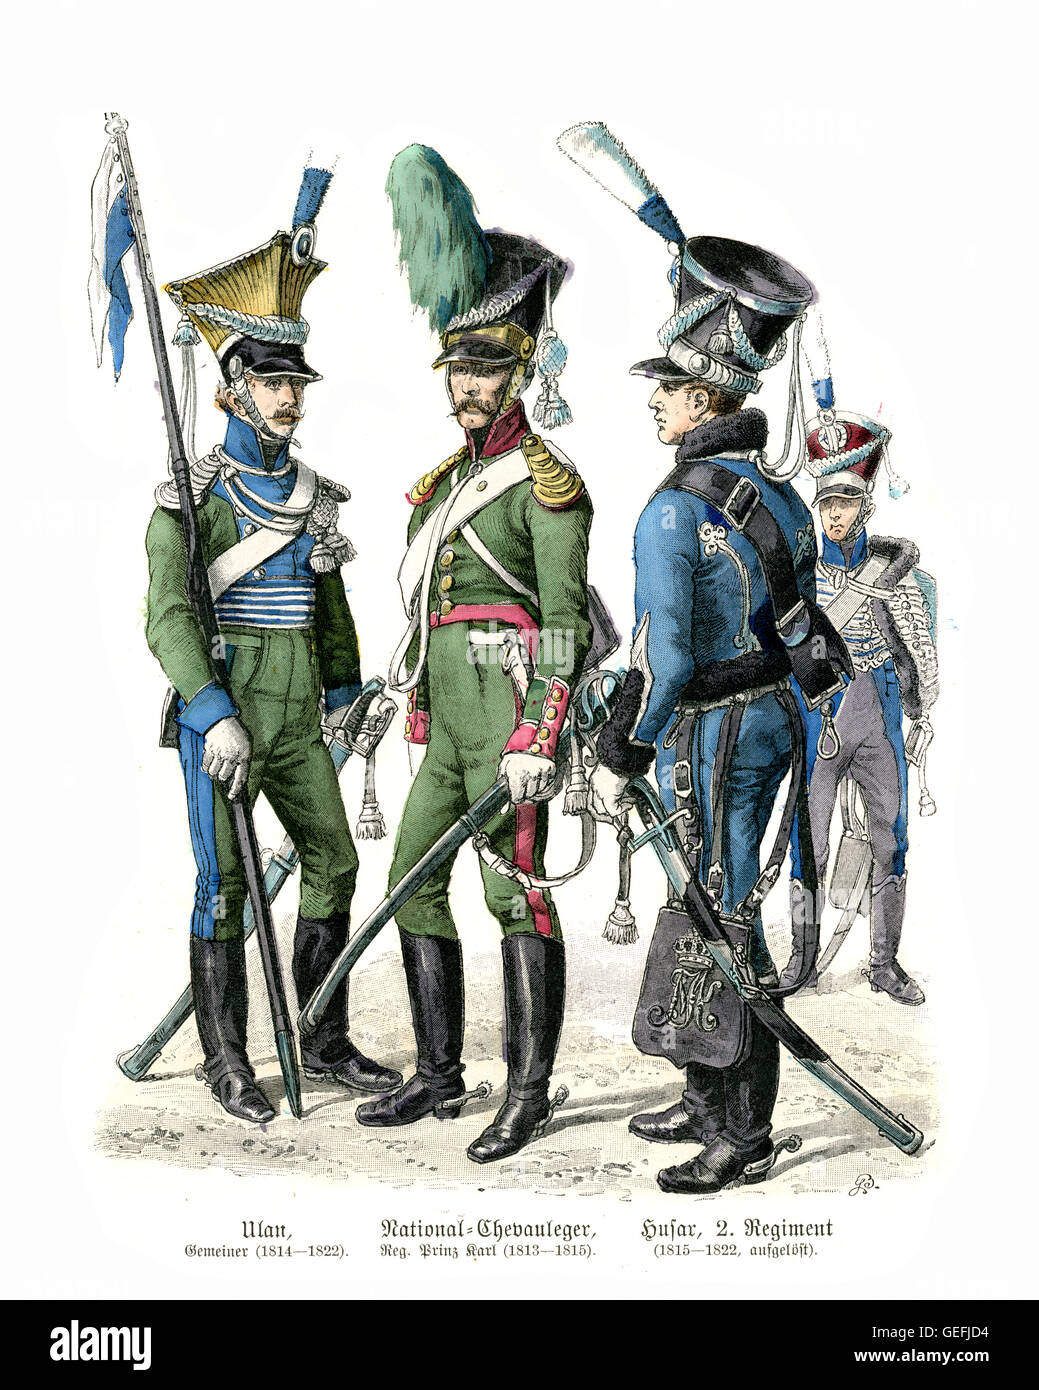 Military uniforms of Bavarian Soldiers early 19th Century. Cavalry,  Ulan, Chevau-leger, Hussar - Stock Image